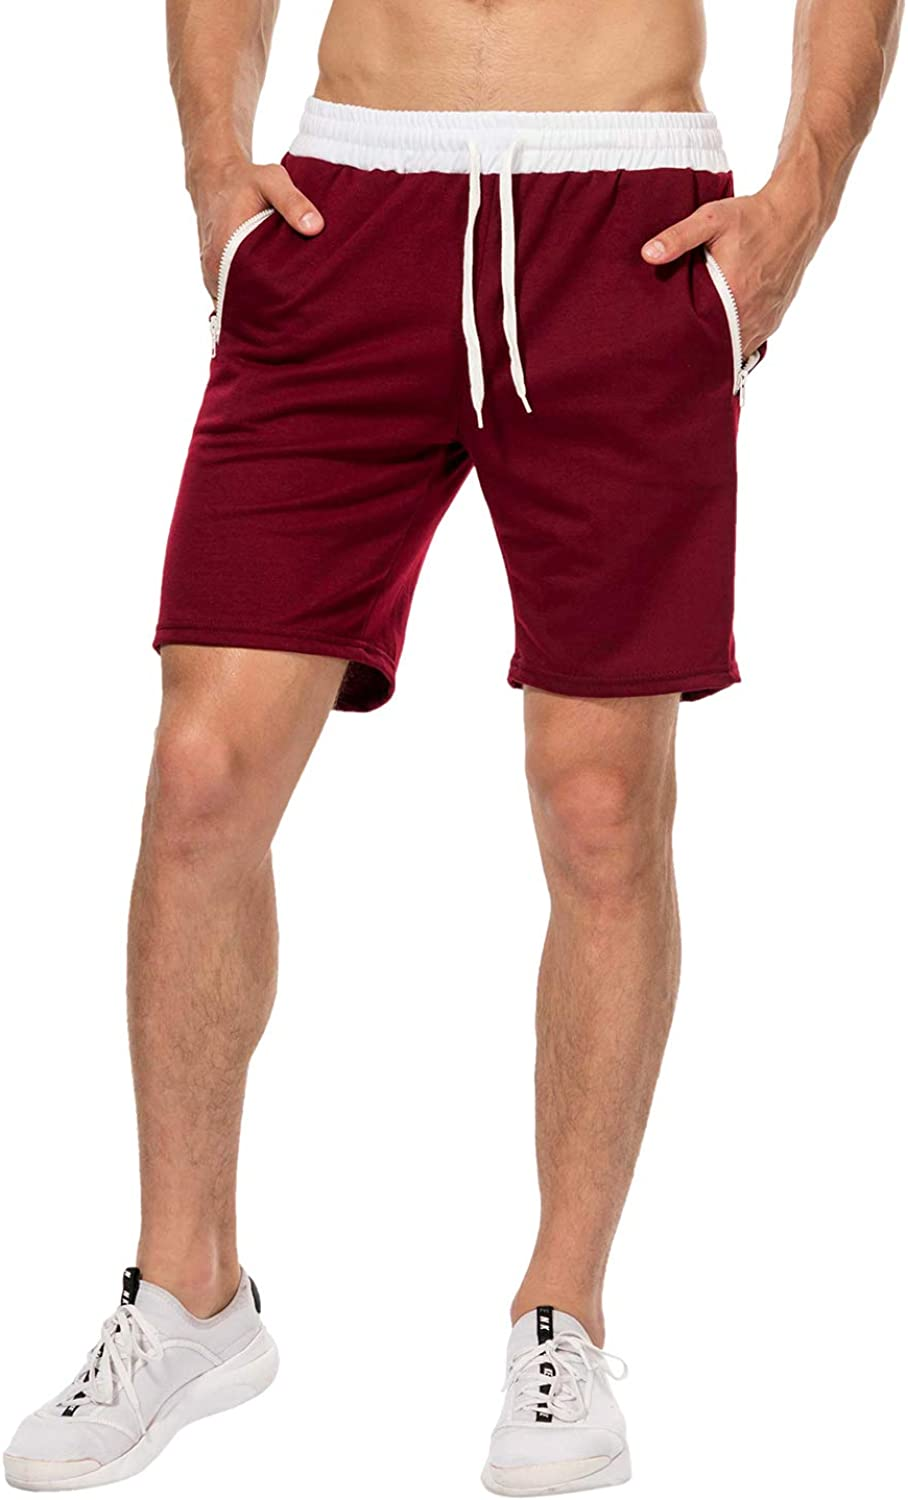 Men Loose Shorts Summer Casual Men Shorts Male Sweatpants Fitness Joggers Short Gyms with Zipper Pockets